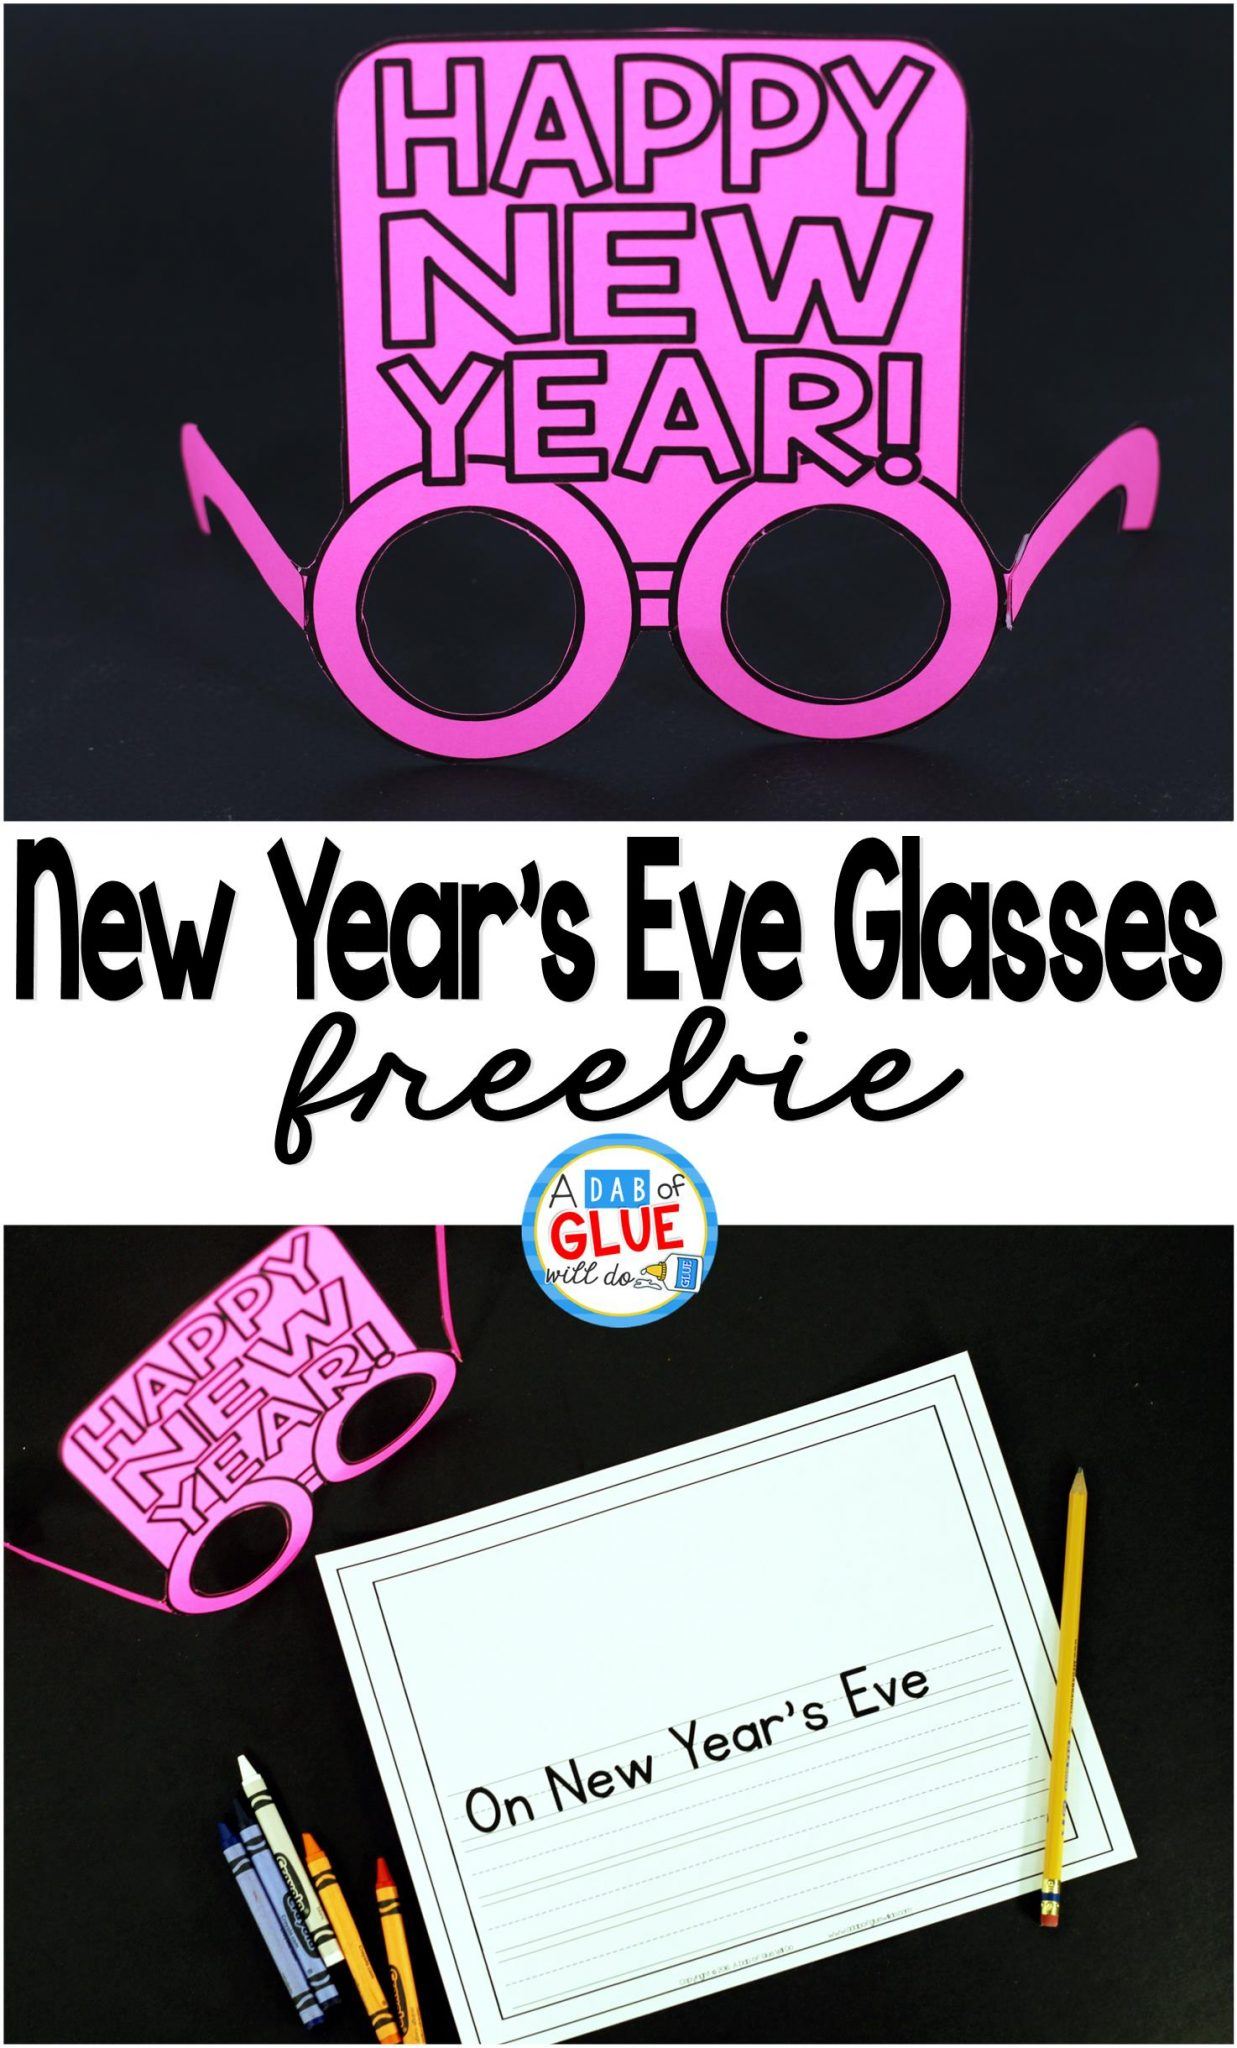 New Year's Eve Glasses and Writing printable is the perfect way to ring in the new year. Whether you are celebrating New Year's Eve or teaching your students about new year's traditions, these free glasses and writing printable will be a great addition.